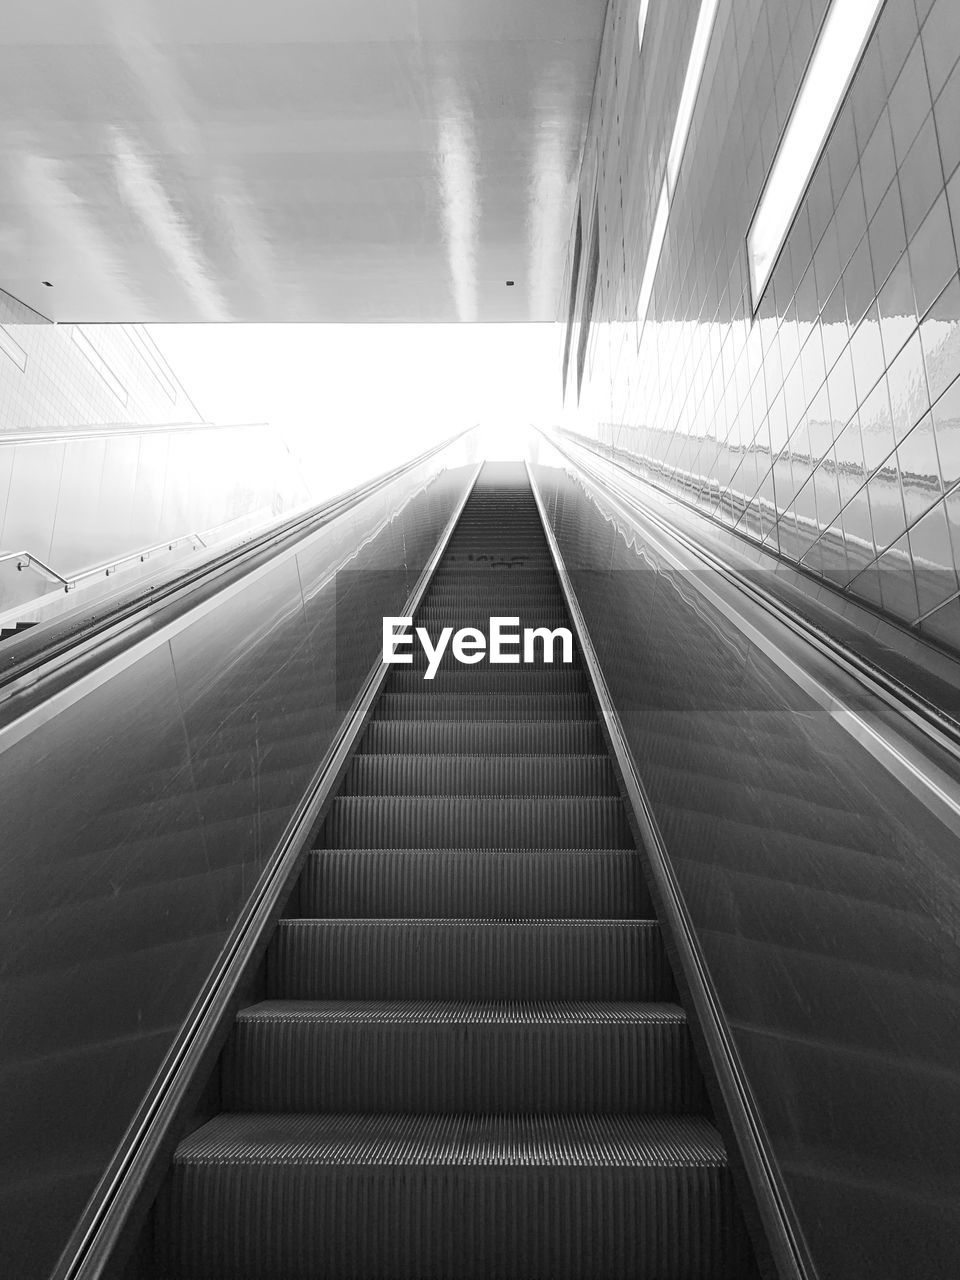 LOW ANGLE VIEW OF ESCALATOR IN UNDERGROUND